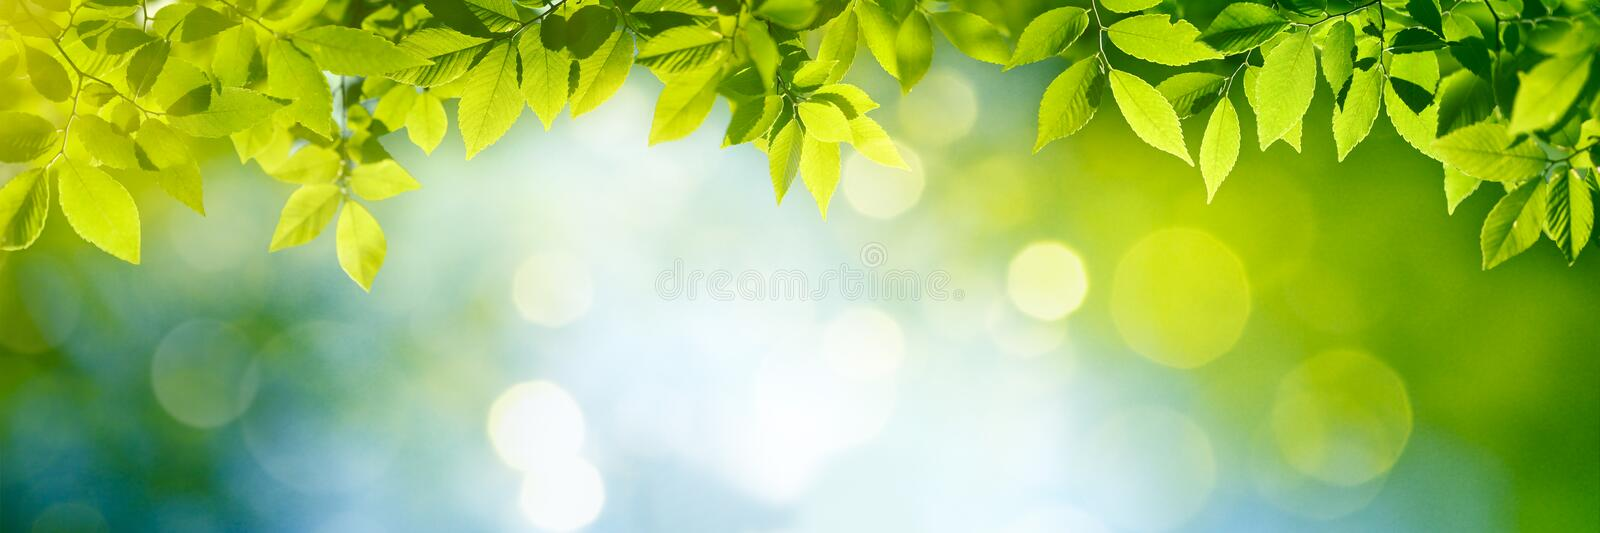 Fresh and green leaves royalty free stock photo